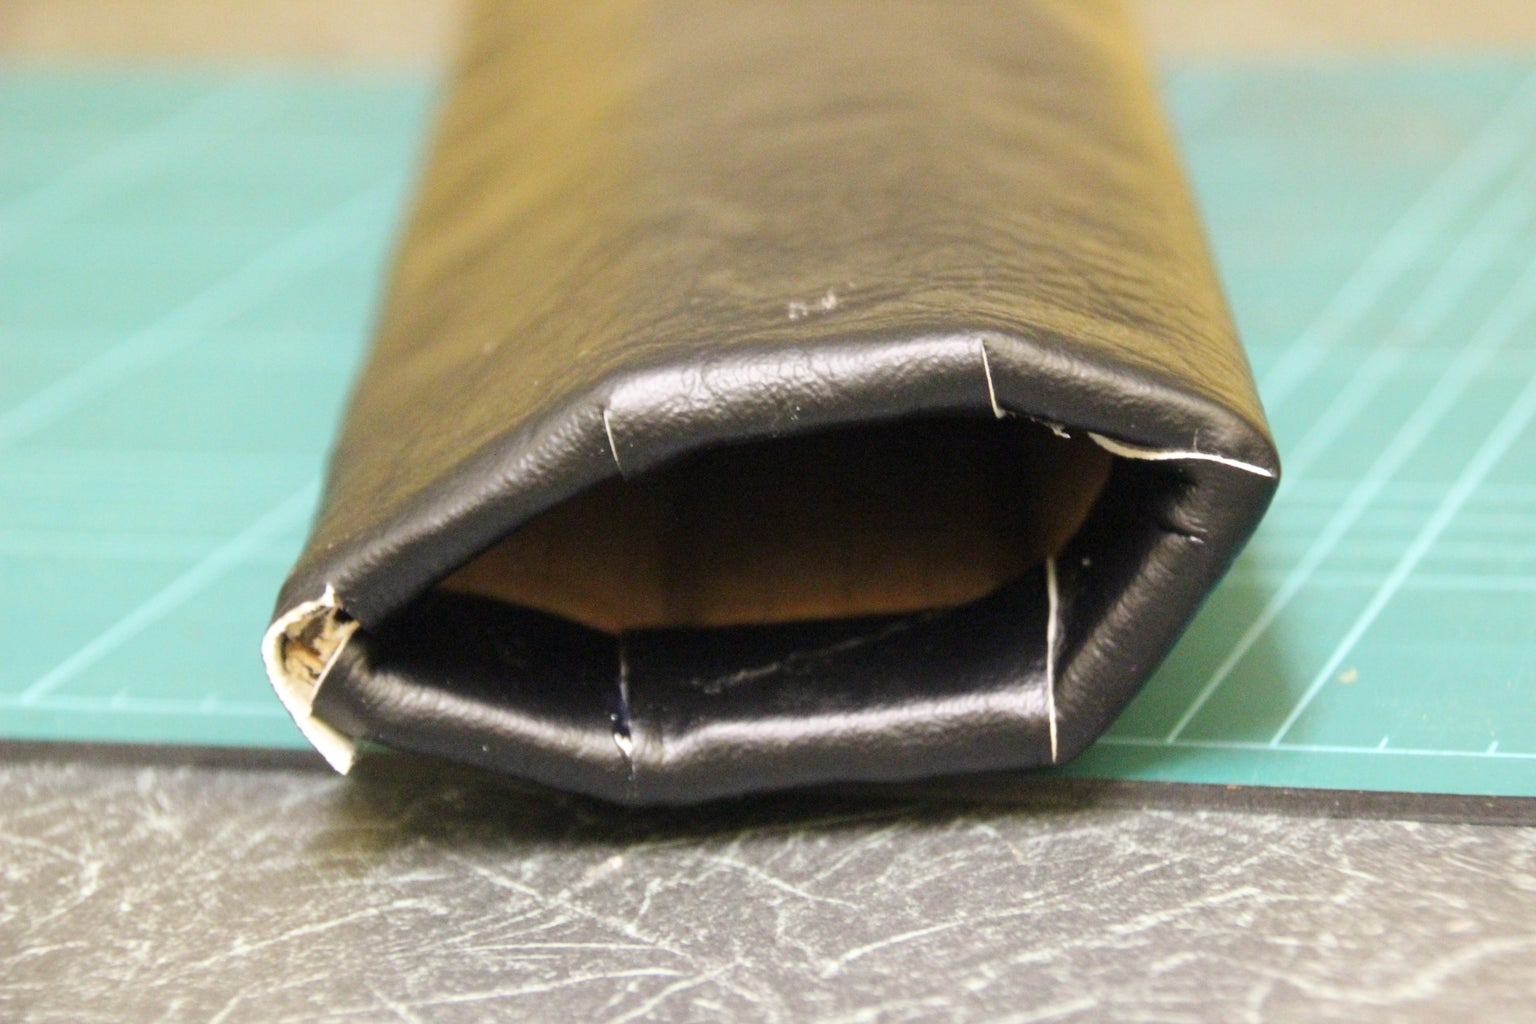 Covering the Scabbard